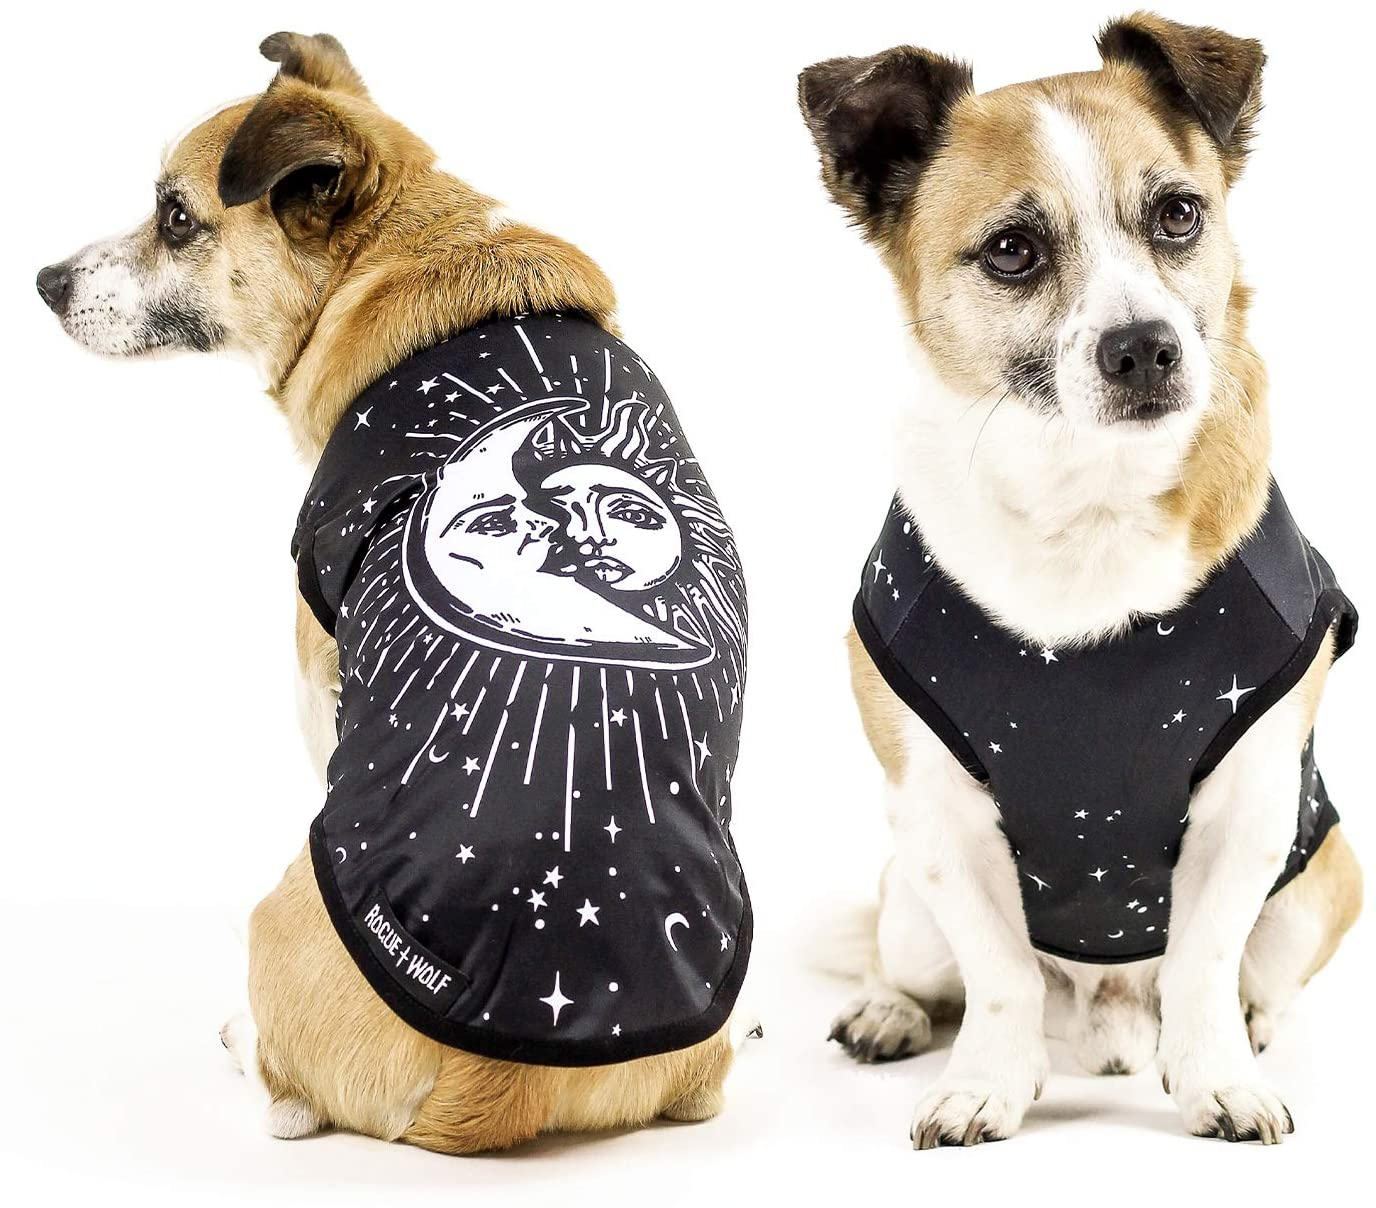 Rogue + Wolf Cute Dog & Cat Vest Clothes for Small Dogs & Large Girl & Boy Puppy Kitten Pets Accessories Pet Outfits Goth Gothic Witchy Gifts Costume Sizes XS - XXL